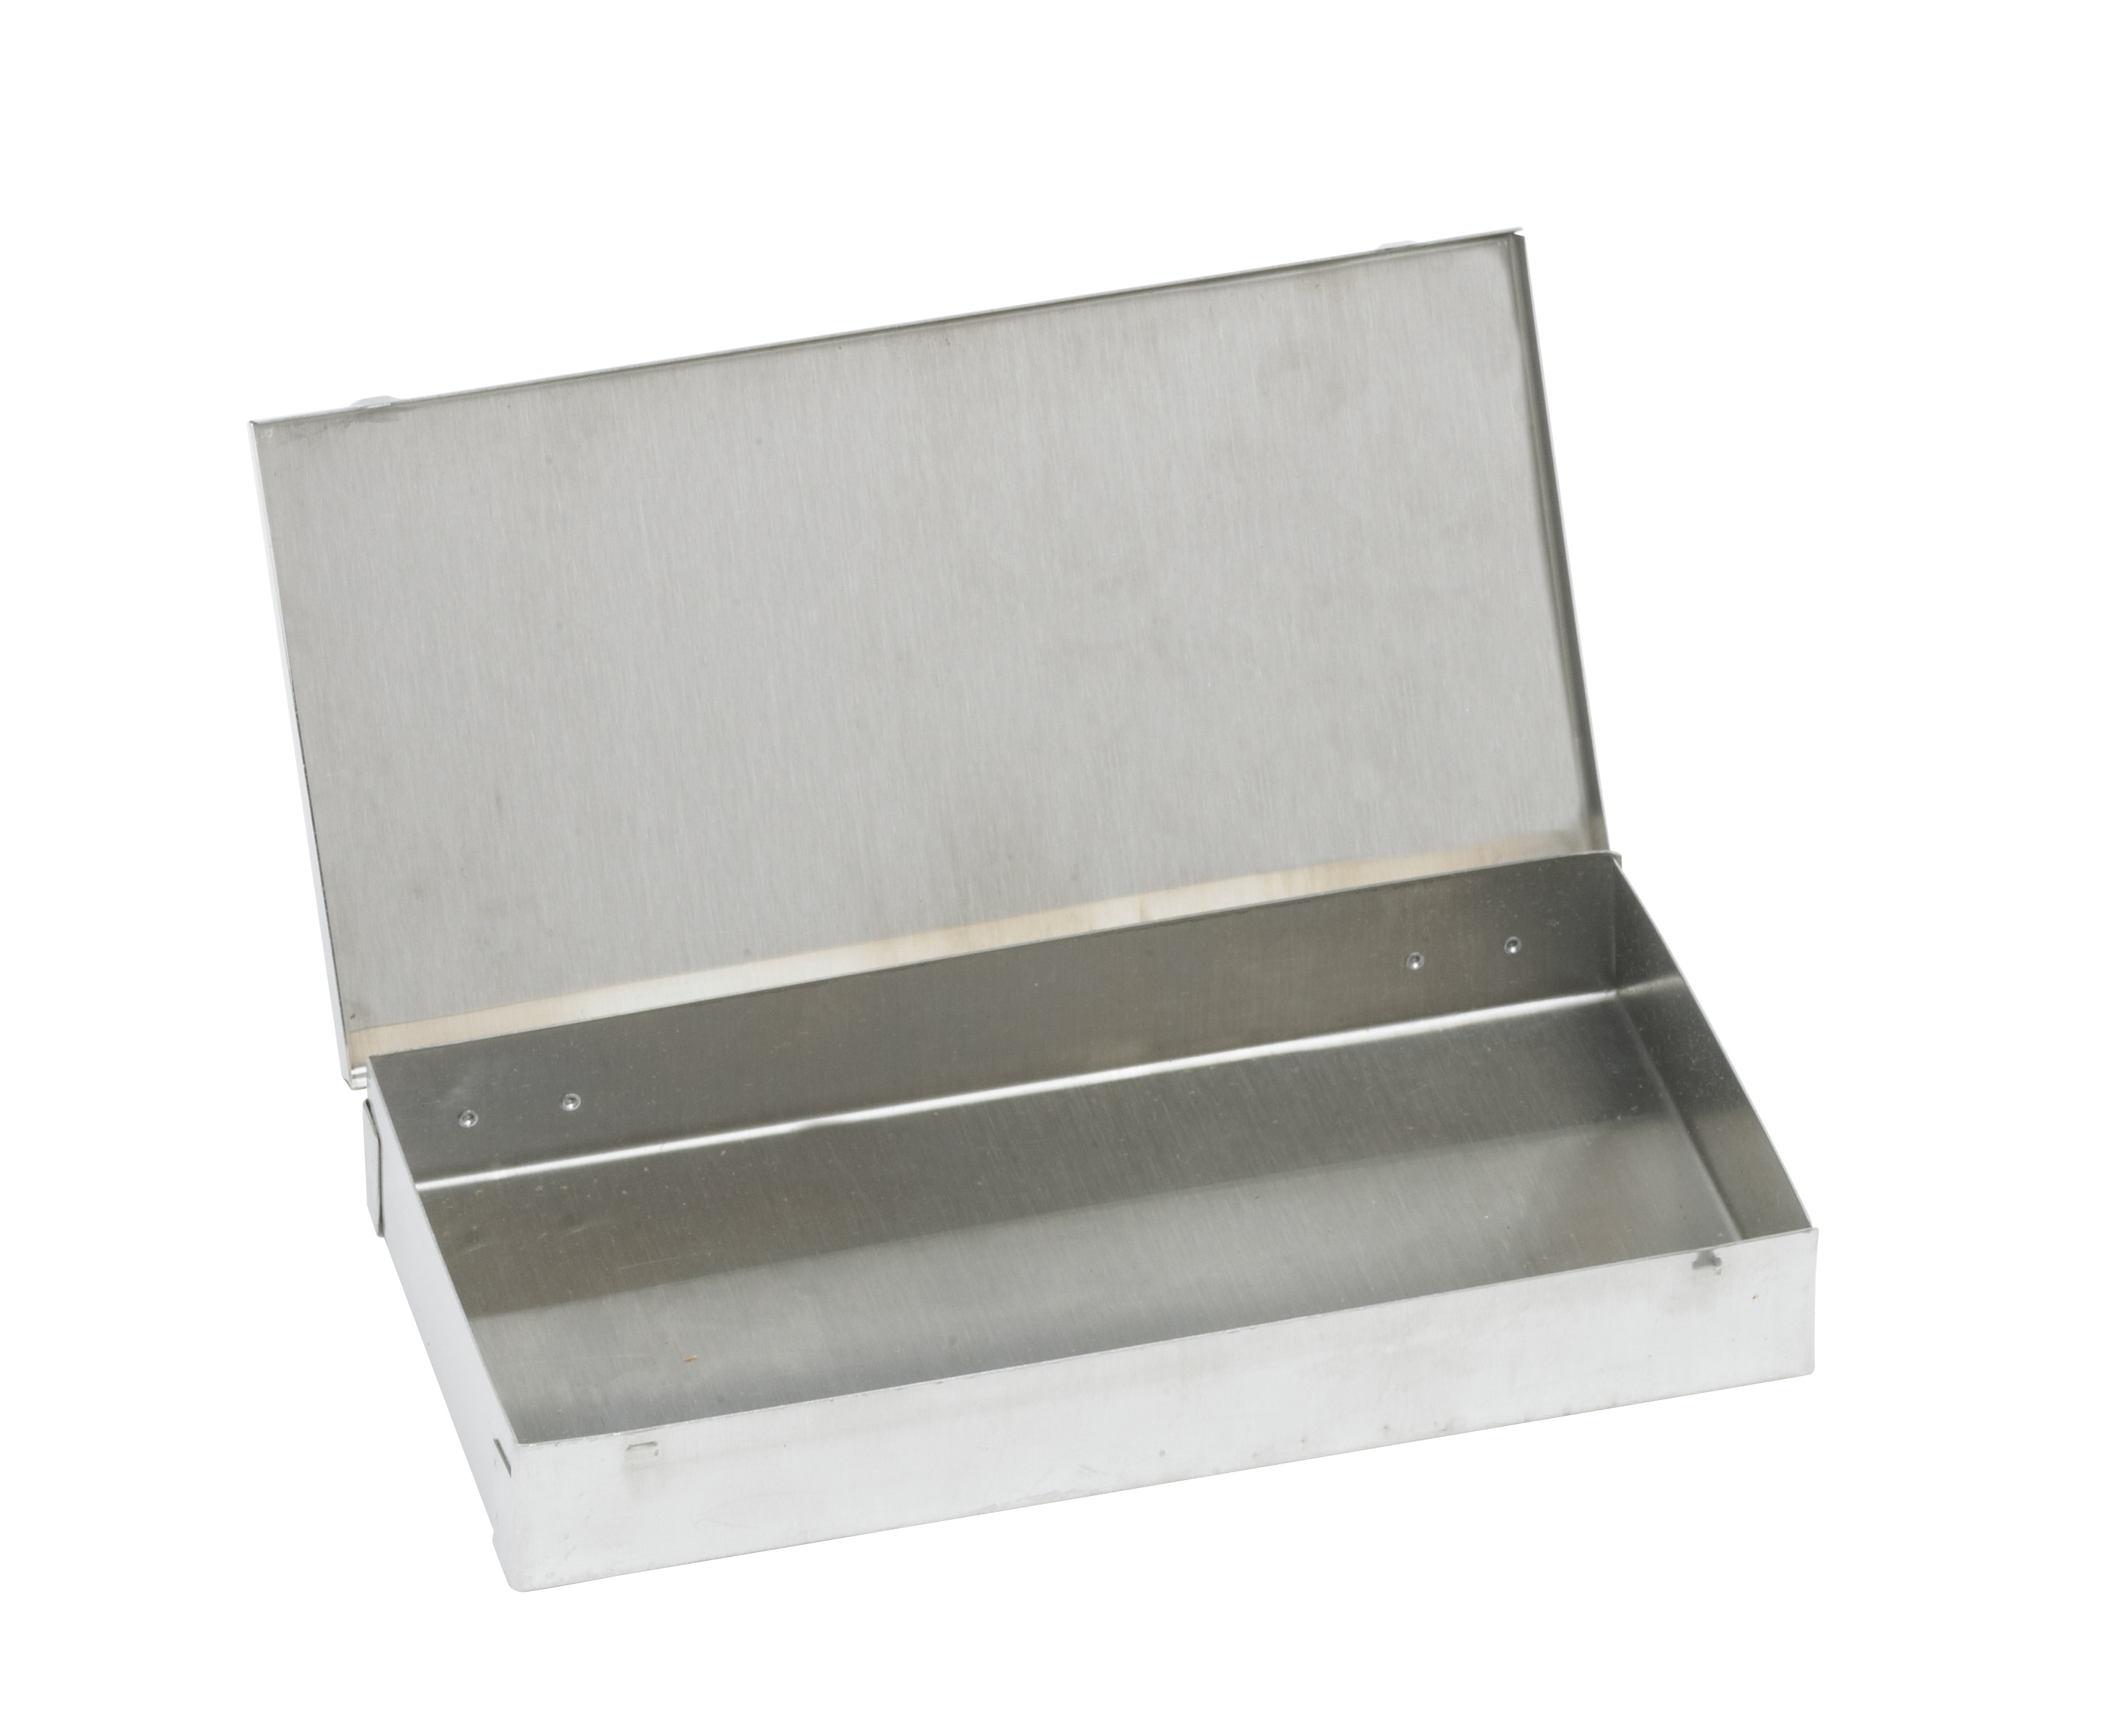 stainless-steel-root-canal-box-without-compartments-and-tray-uow-017-47375-miltex.jpg